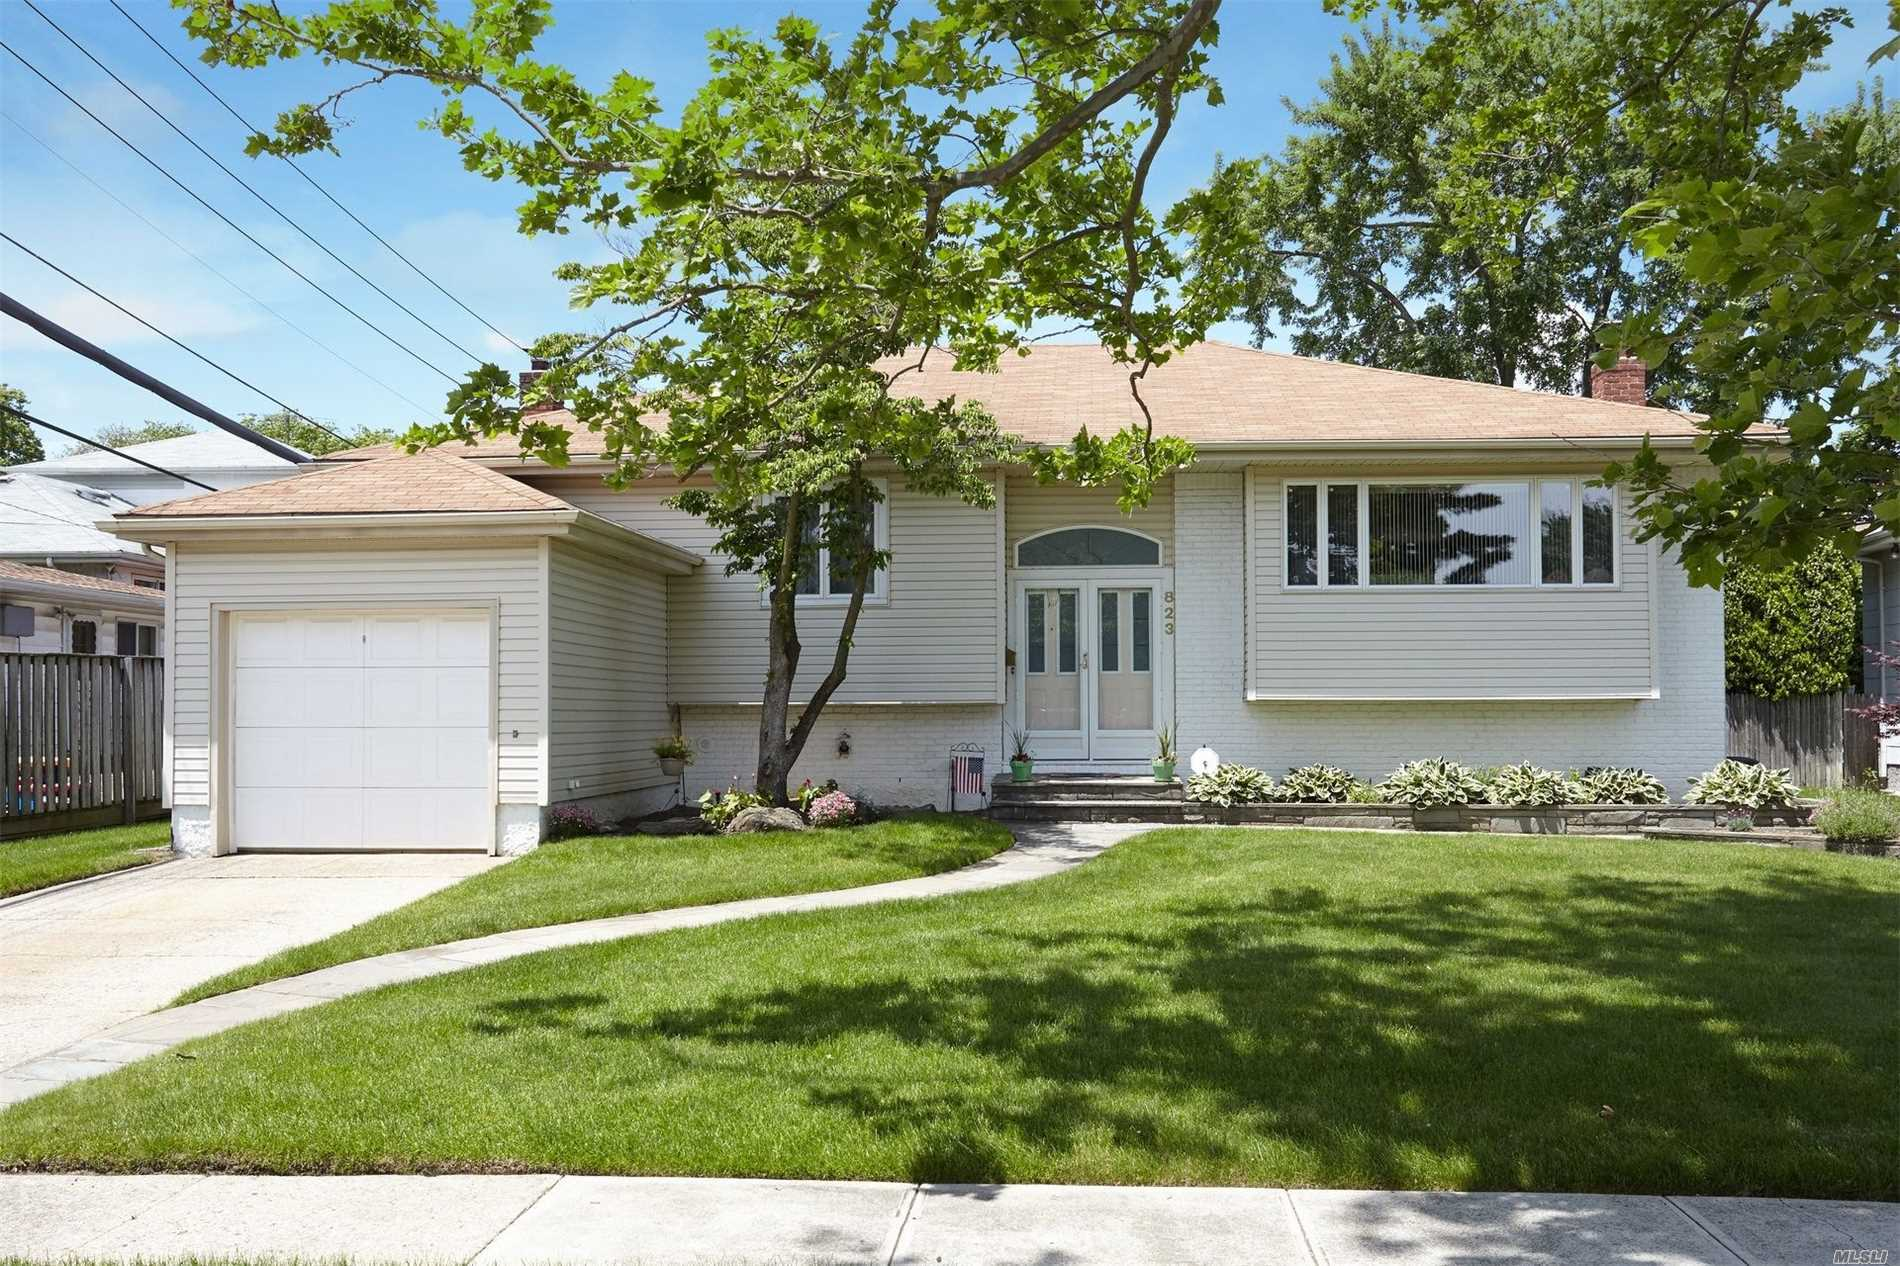 Move Right In To This Sunny & Spacious 4 Bedrm 2.5 Bth Home Located On Lovely Tree Lined Quiet Street In N.Woodmere , Sd#14. This Beautifully Renovated And Maintained Home Has Low Taxes, Hw Flrs, Cac, And 2 Zone Heat. Flr, Fdr, Masterbdrm Suite W/ Bth, Lg Fam Rm W/ Fplc, Lg Rear Patio. Great Flow For Entertaining. All Systems!